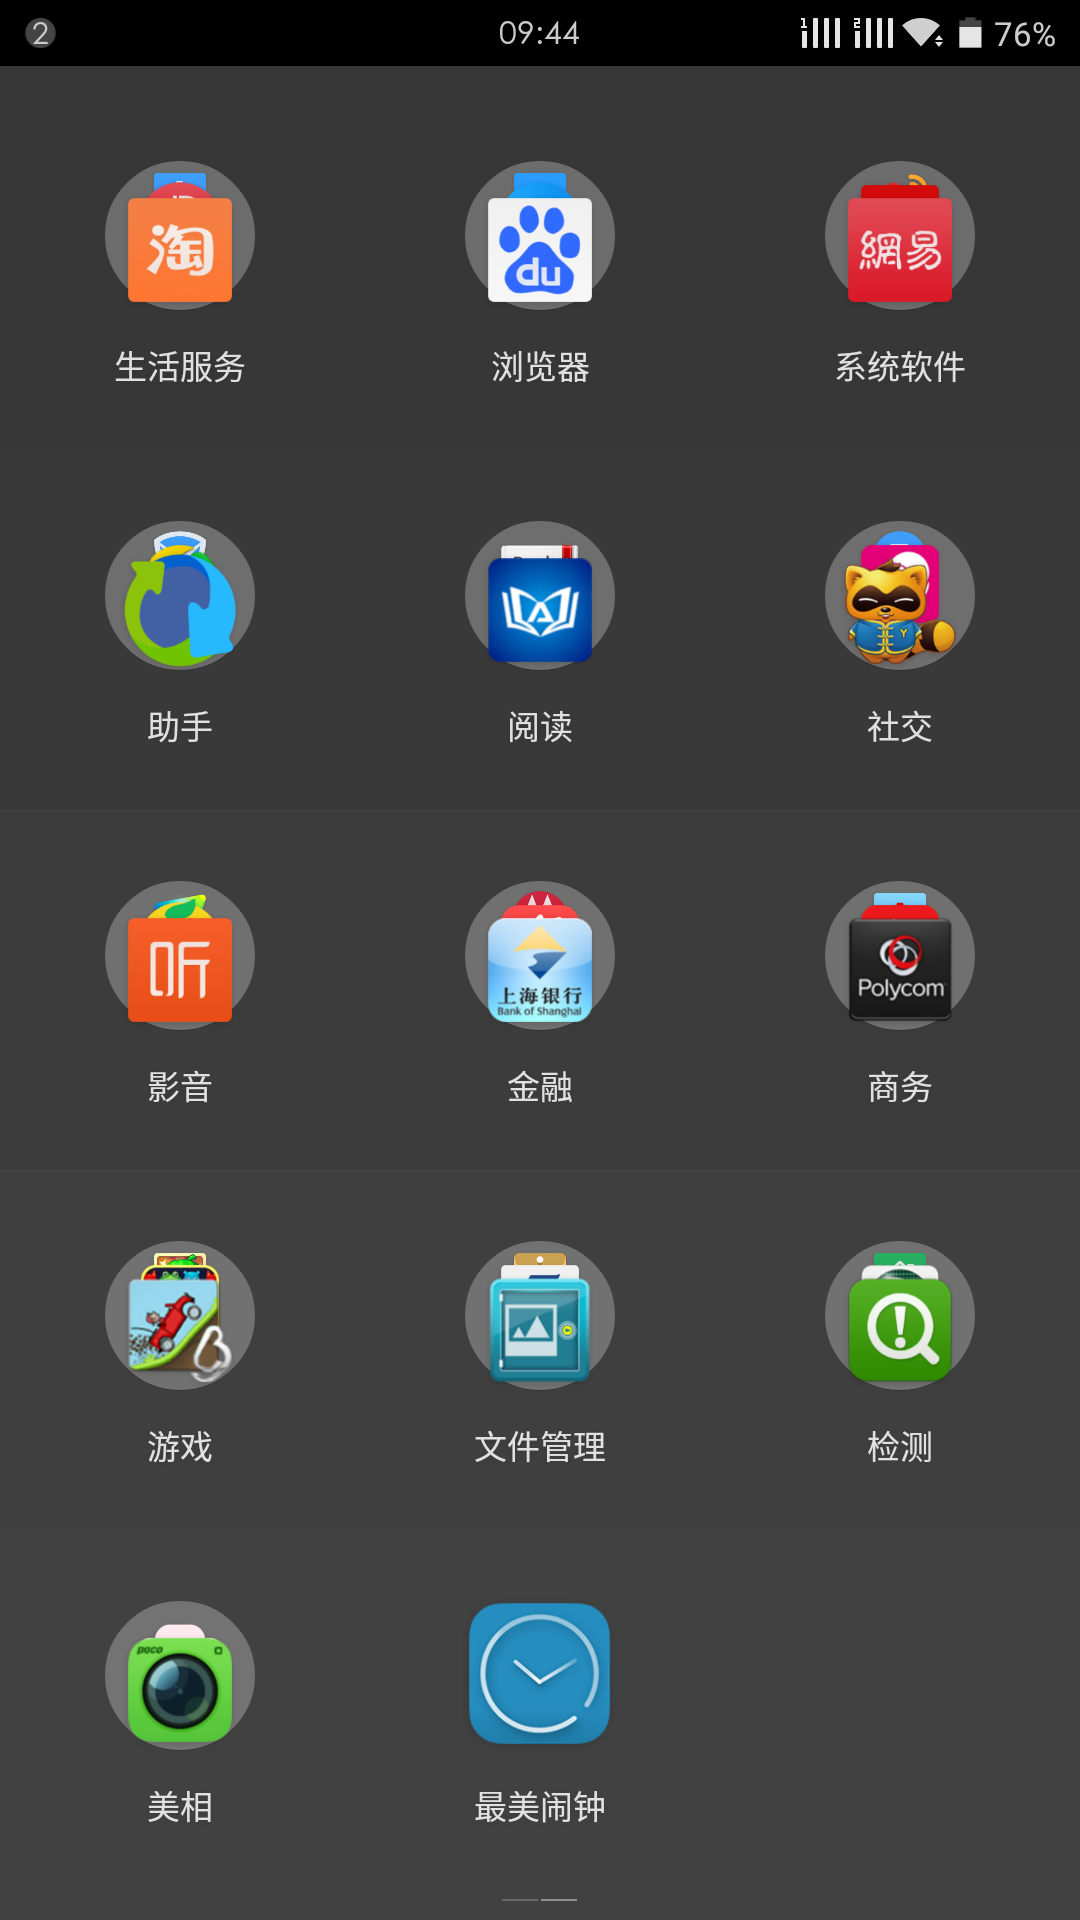 Screenshot_2015-09-25-09-44-05.png